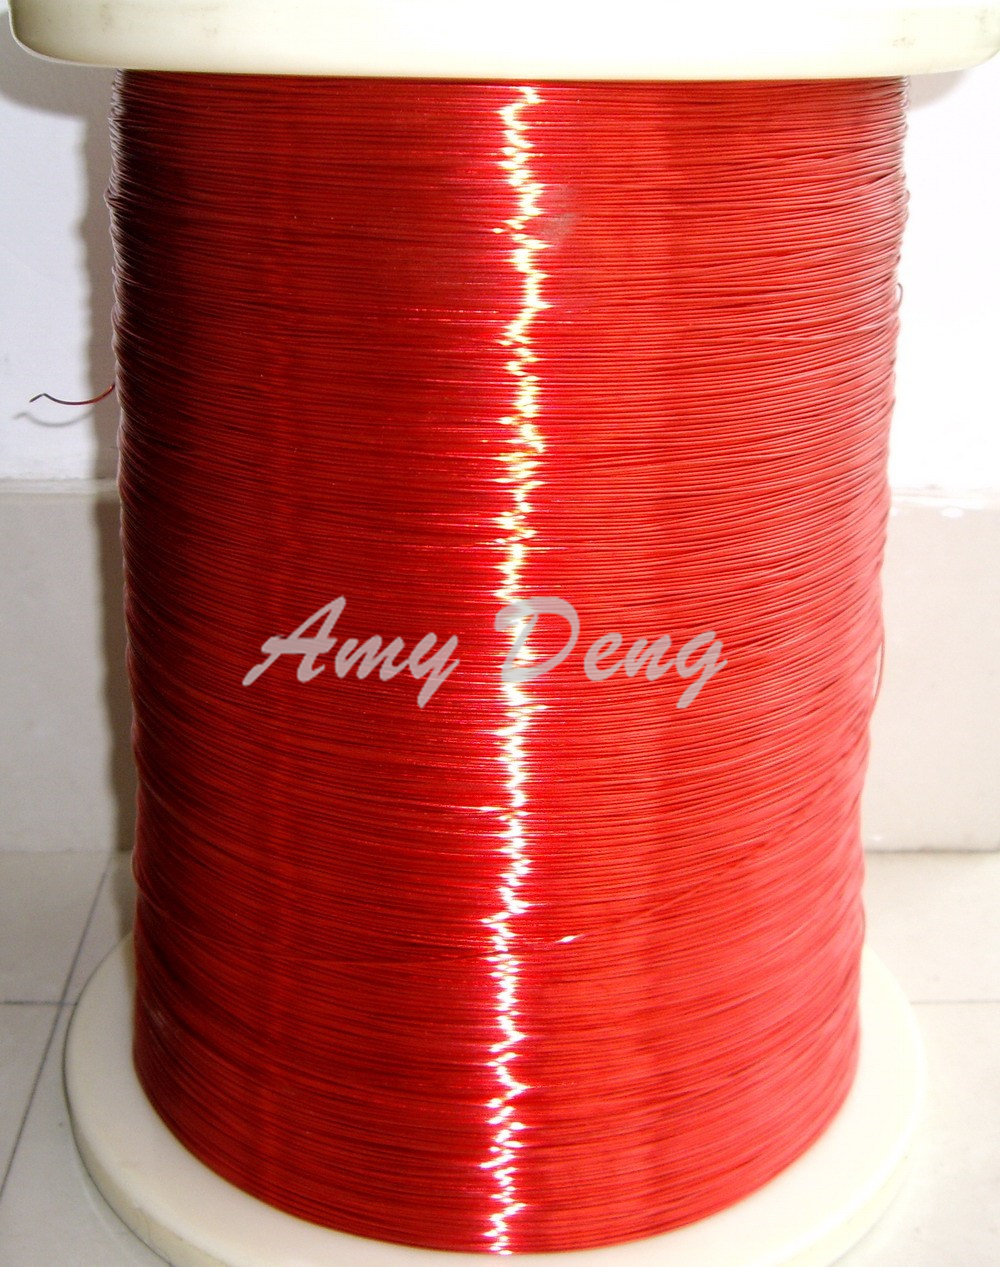 100 Meters/lot  0.8 Mm Red New Polyurethane Enamelled Wire Copper Wire QA-1-155 2UEW Per Meter For Sale